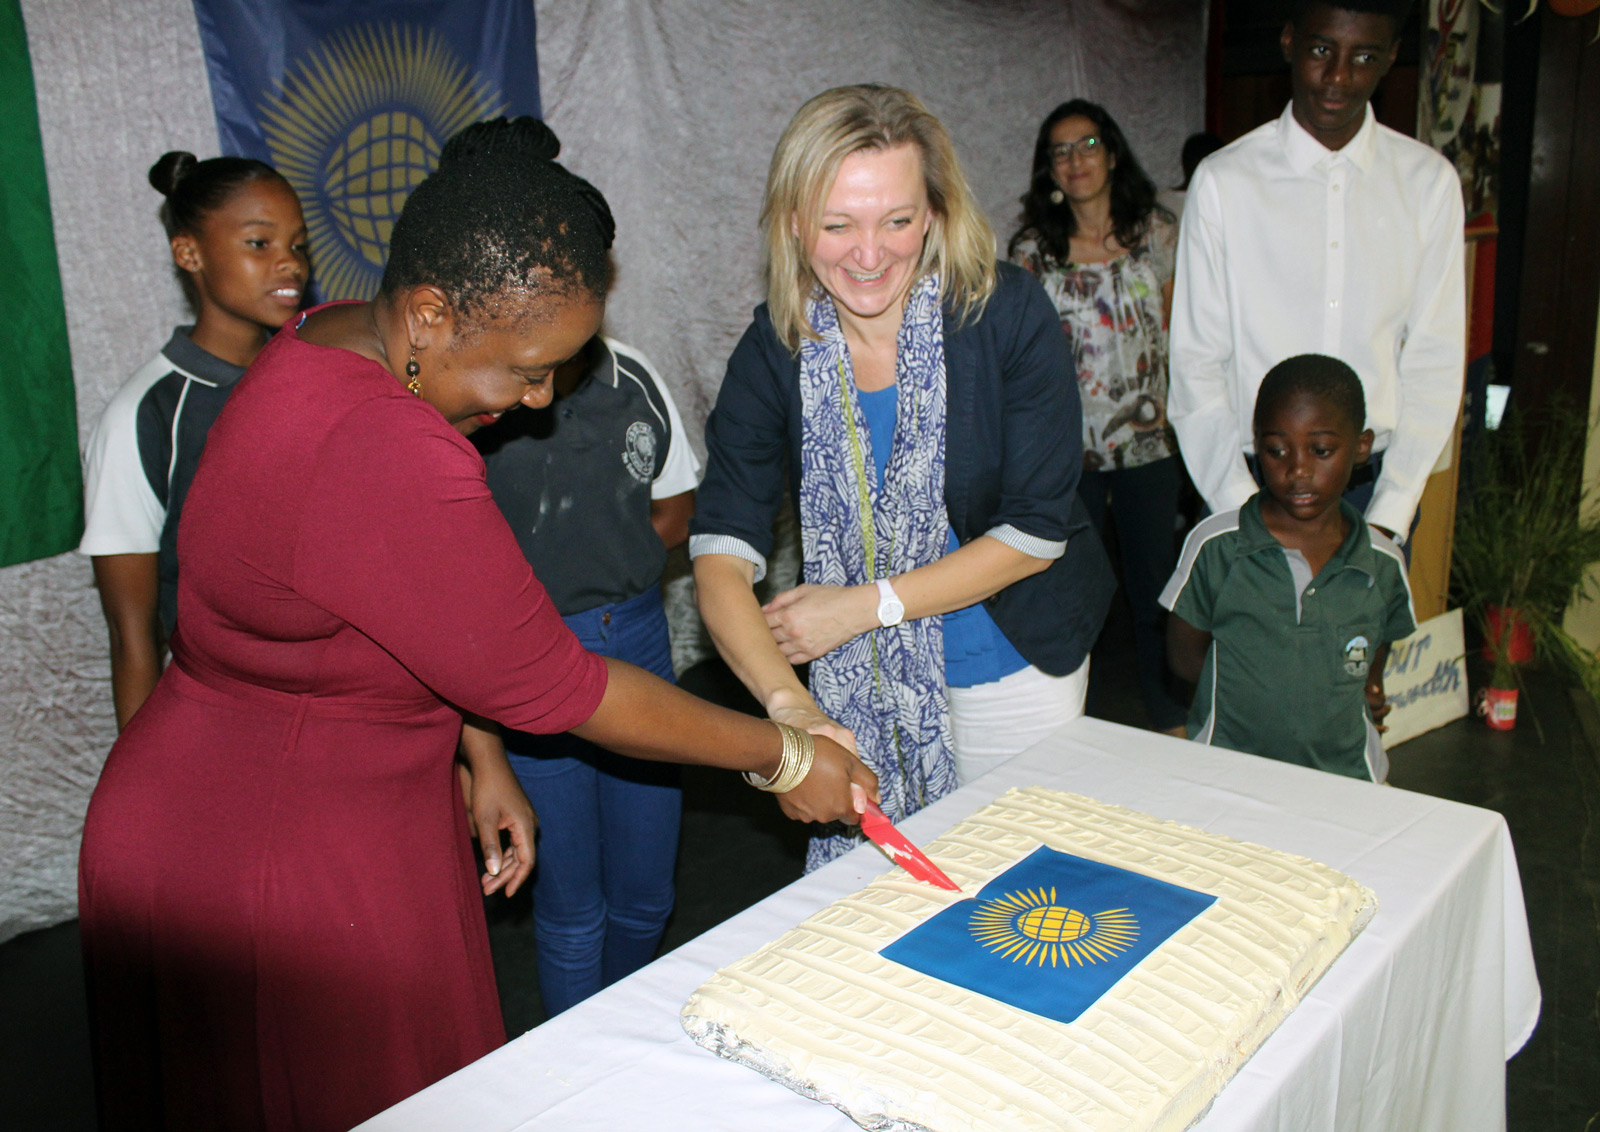 Cutting a Commonwealth cake